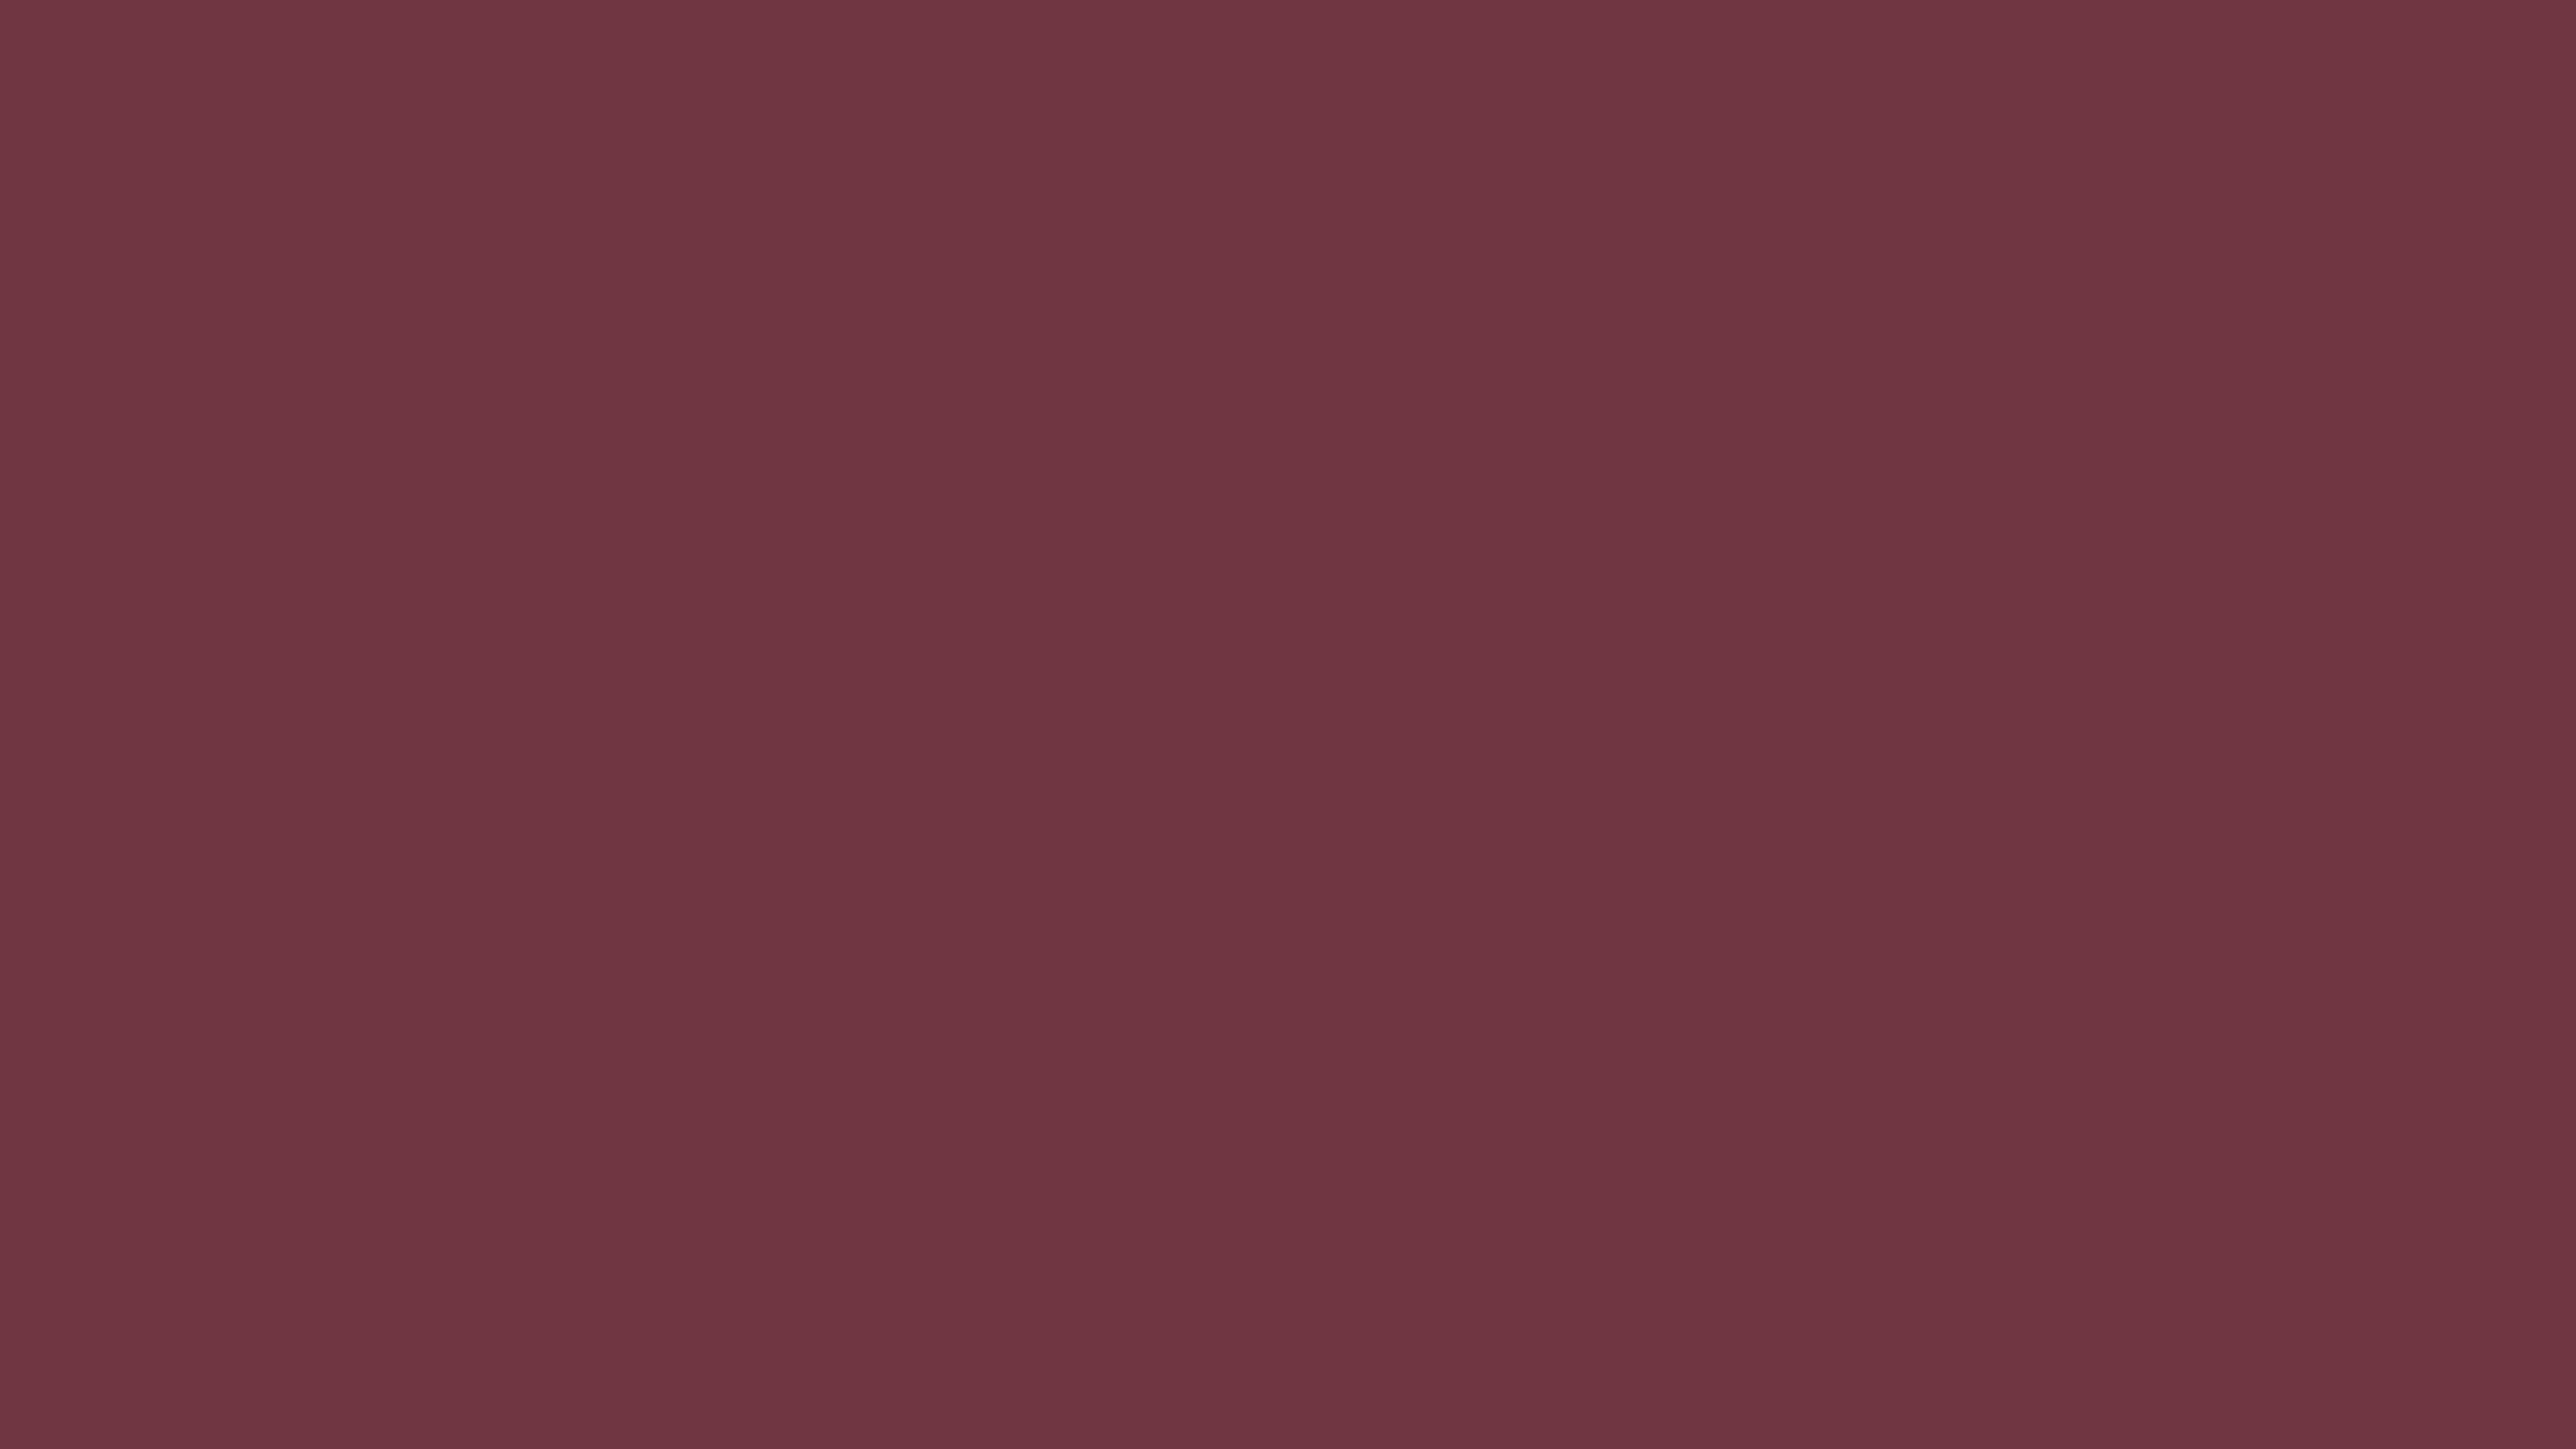 5120x2880 Catawba Solid Color Background